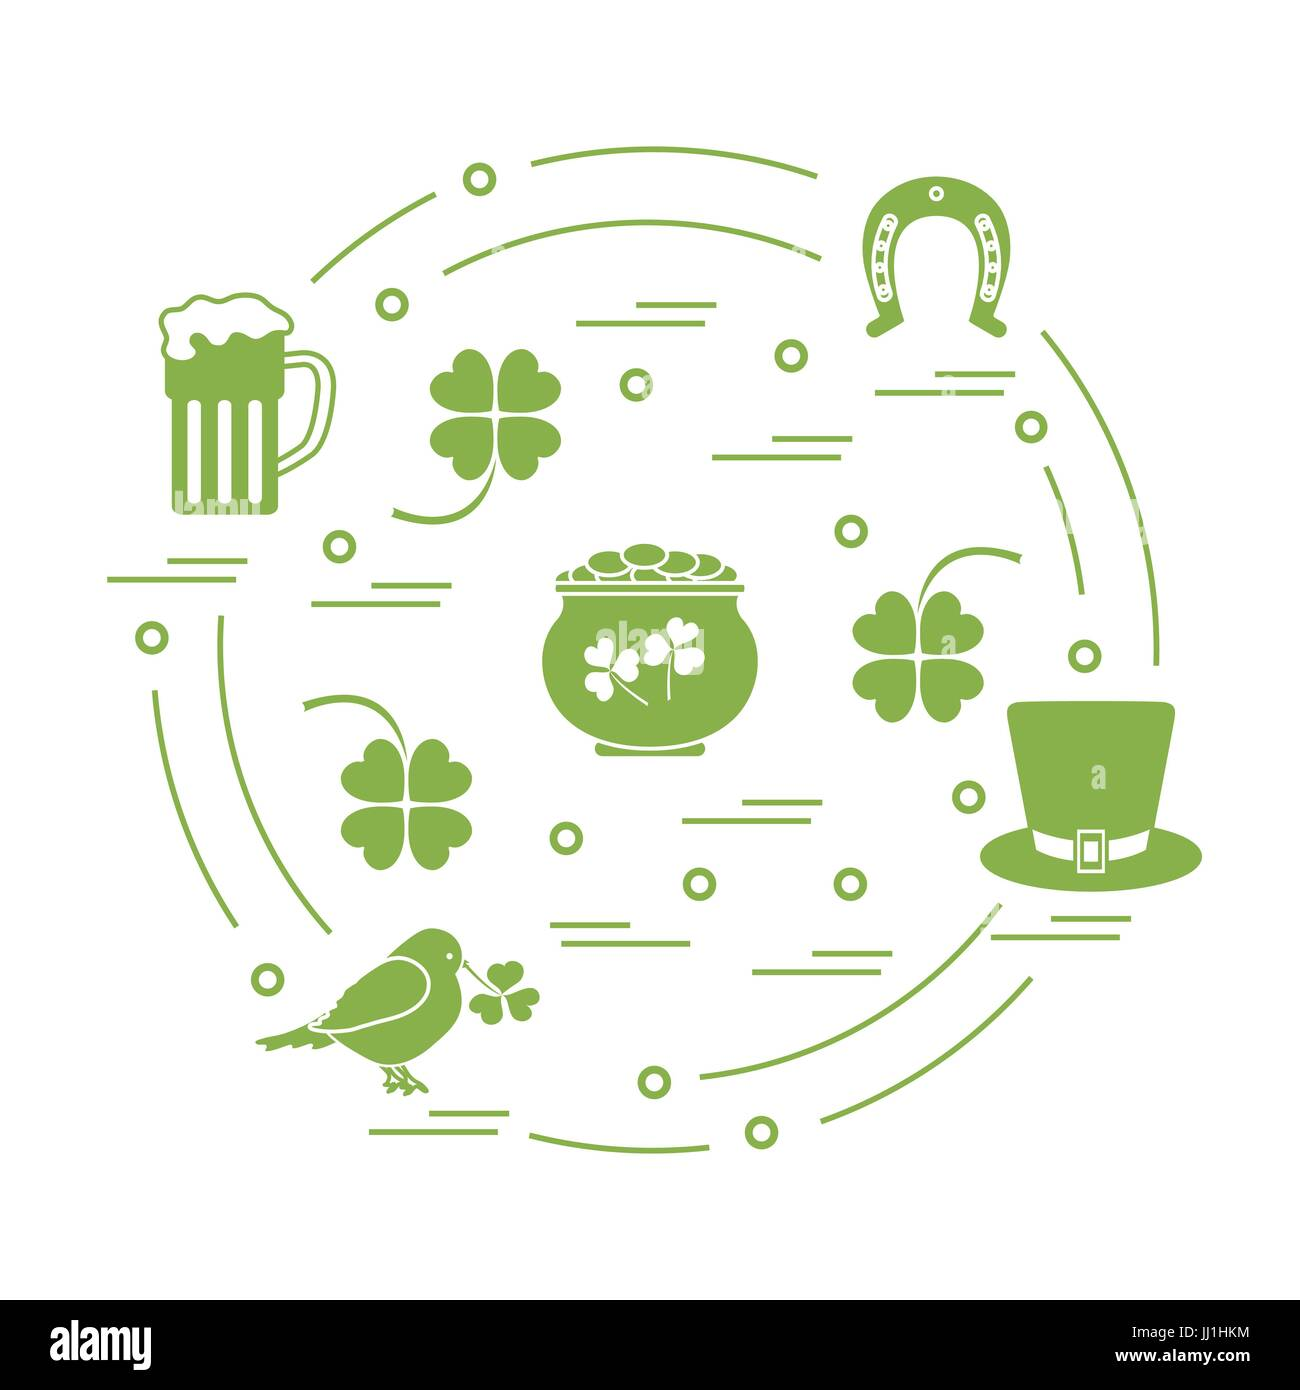 Cute Vector Illustration With Different Symbols For St Patricks